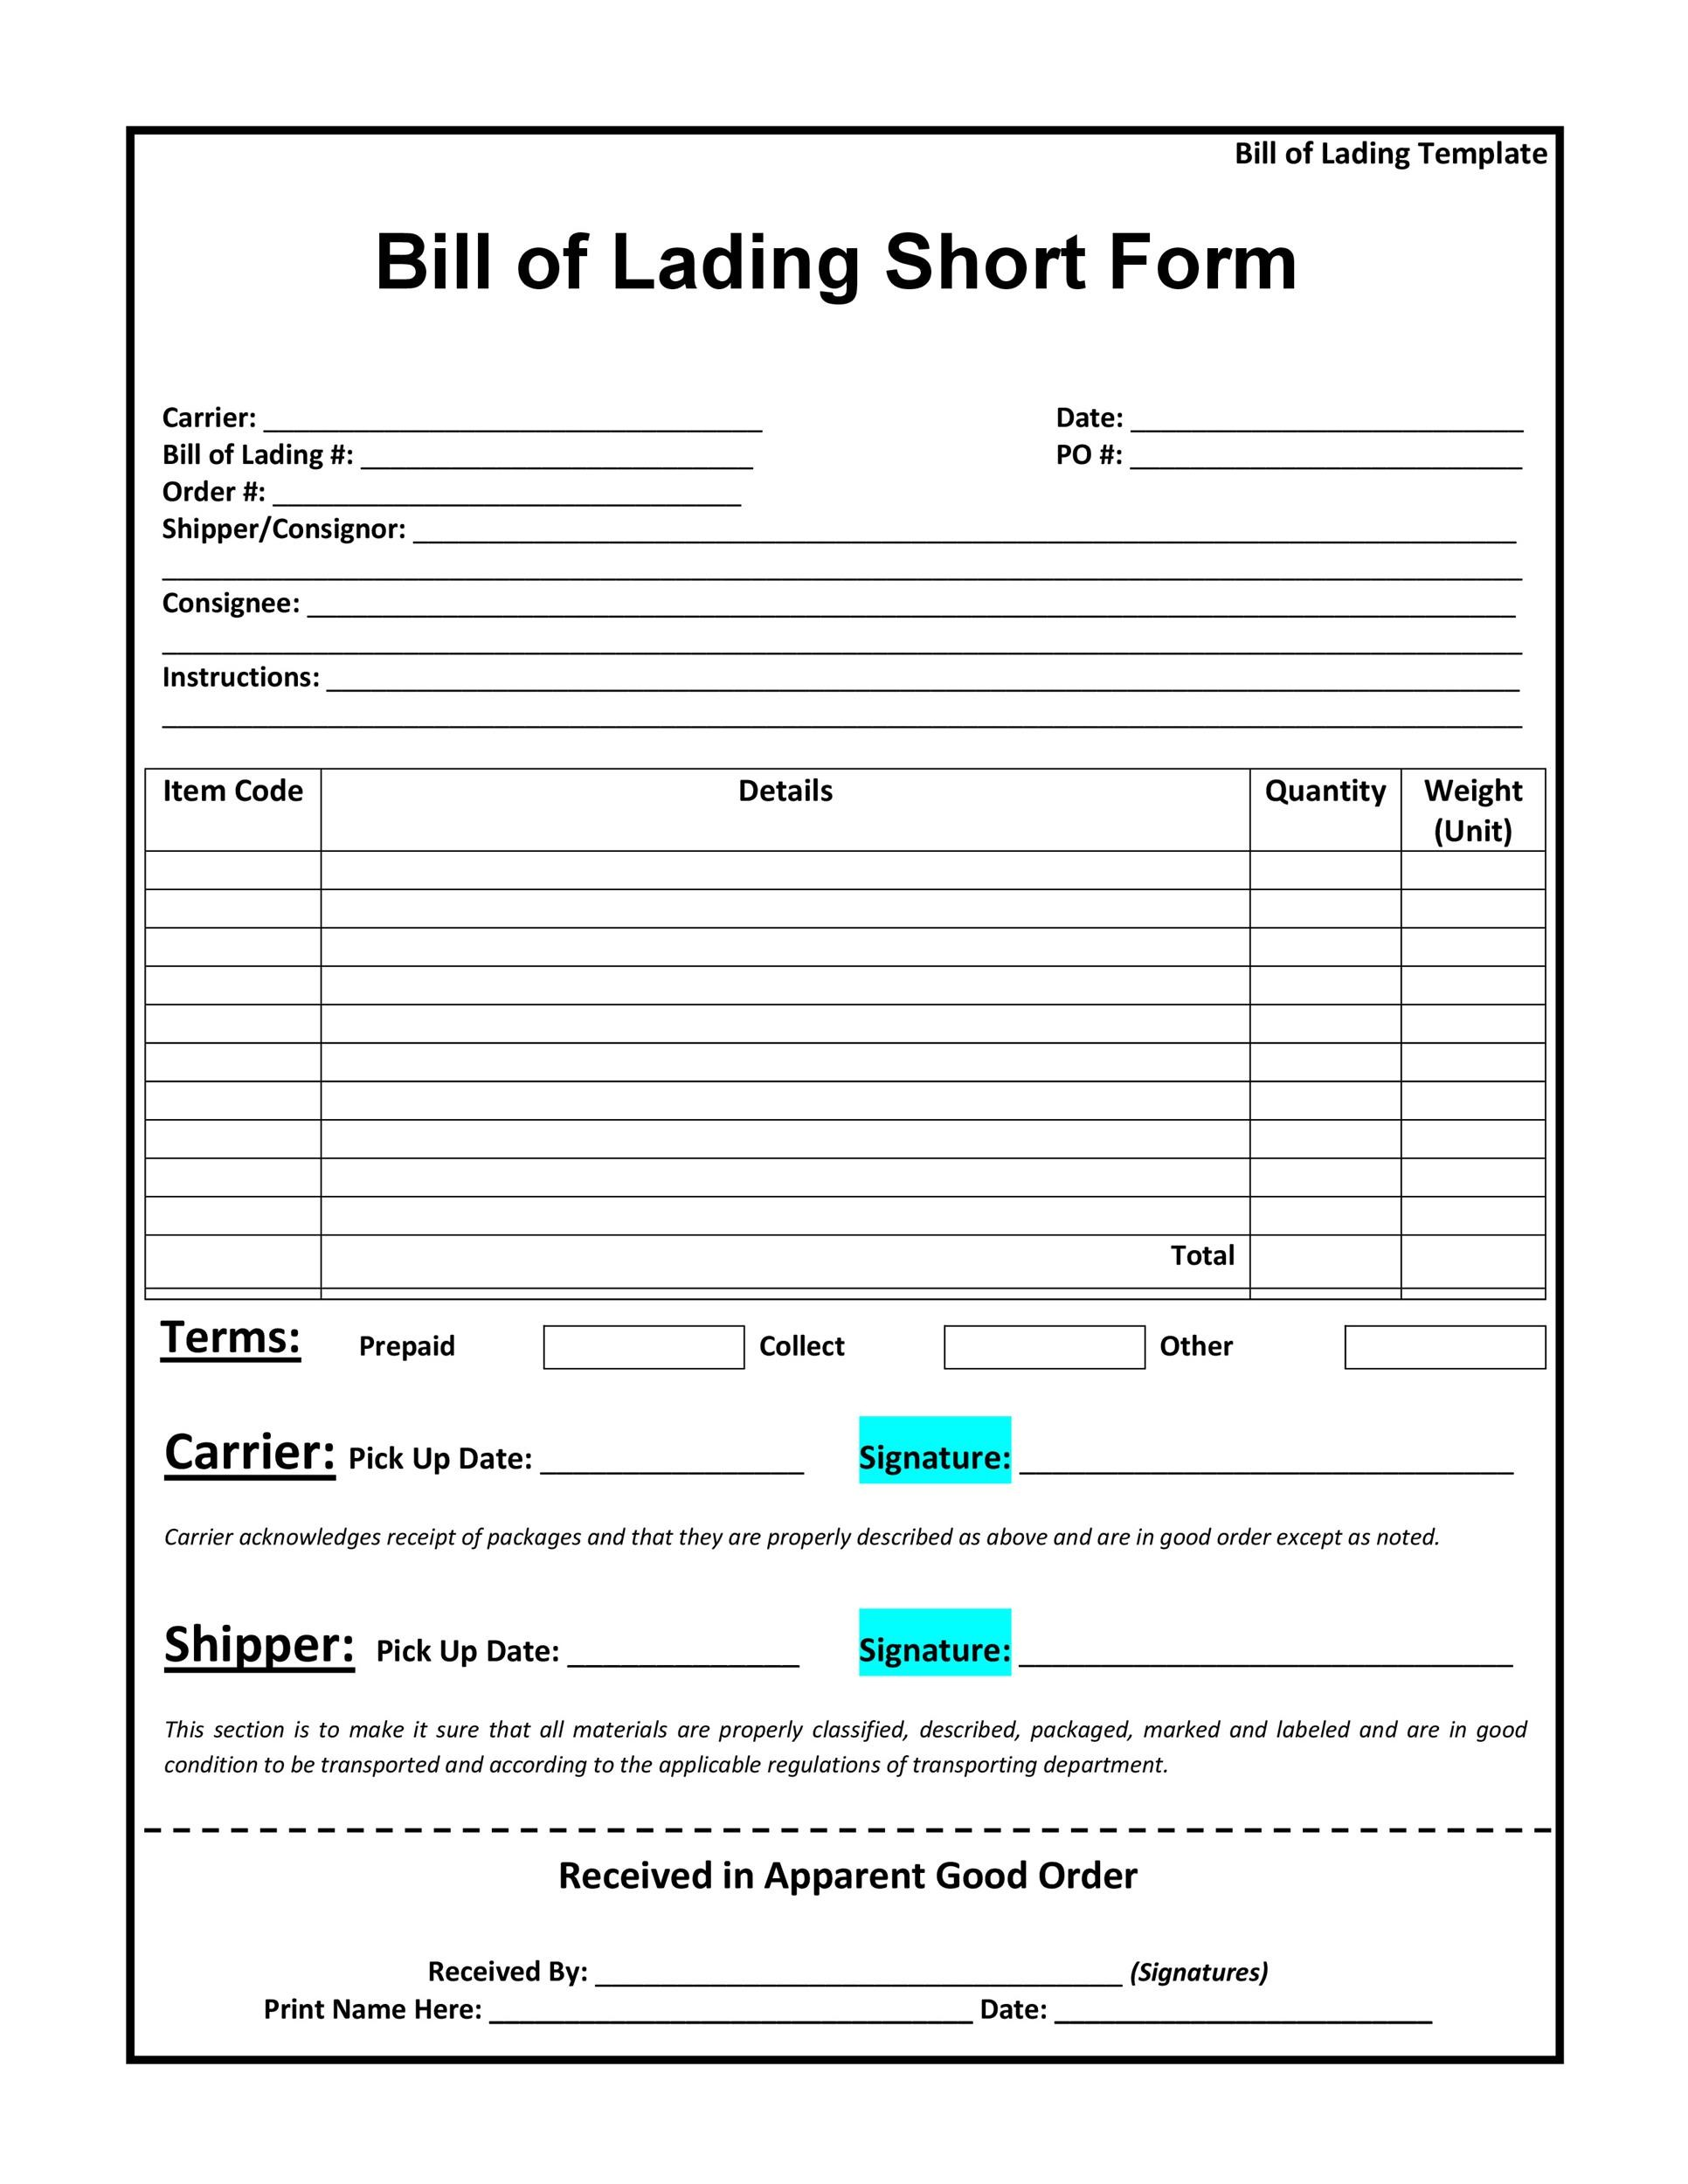 Attractive Free Bill Of Lading 30